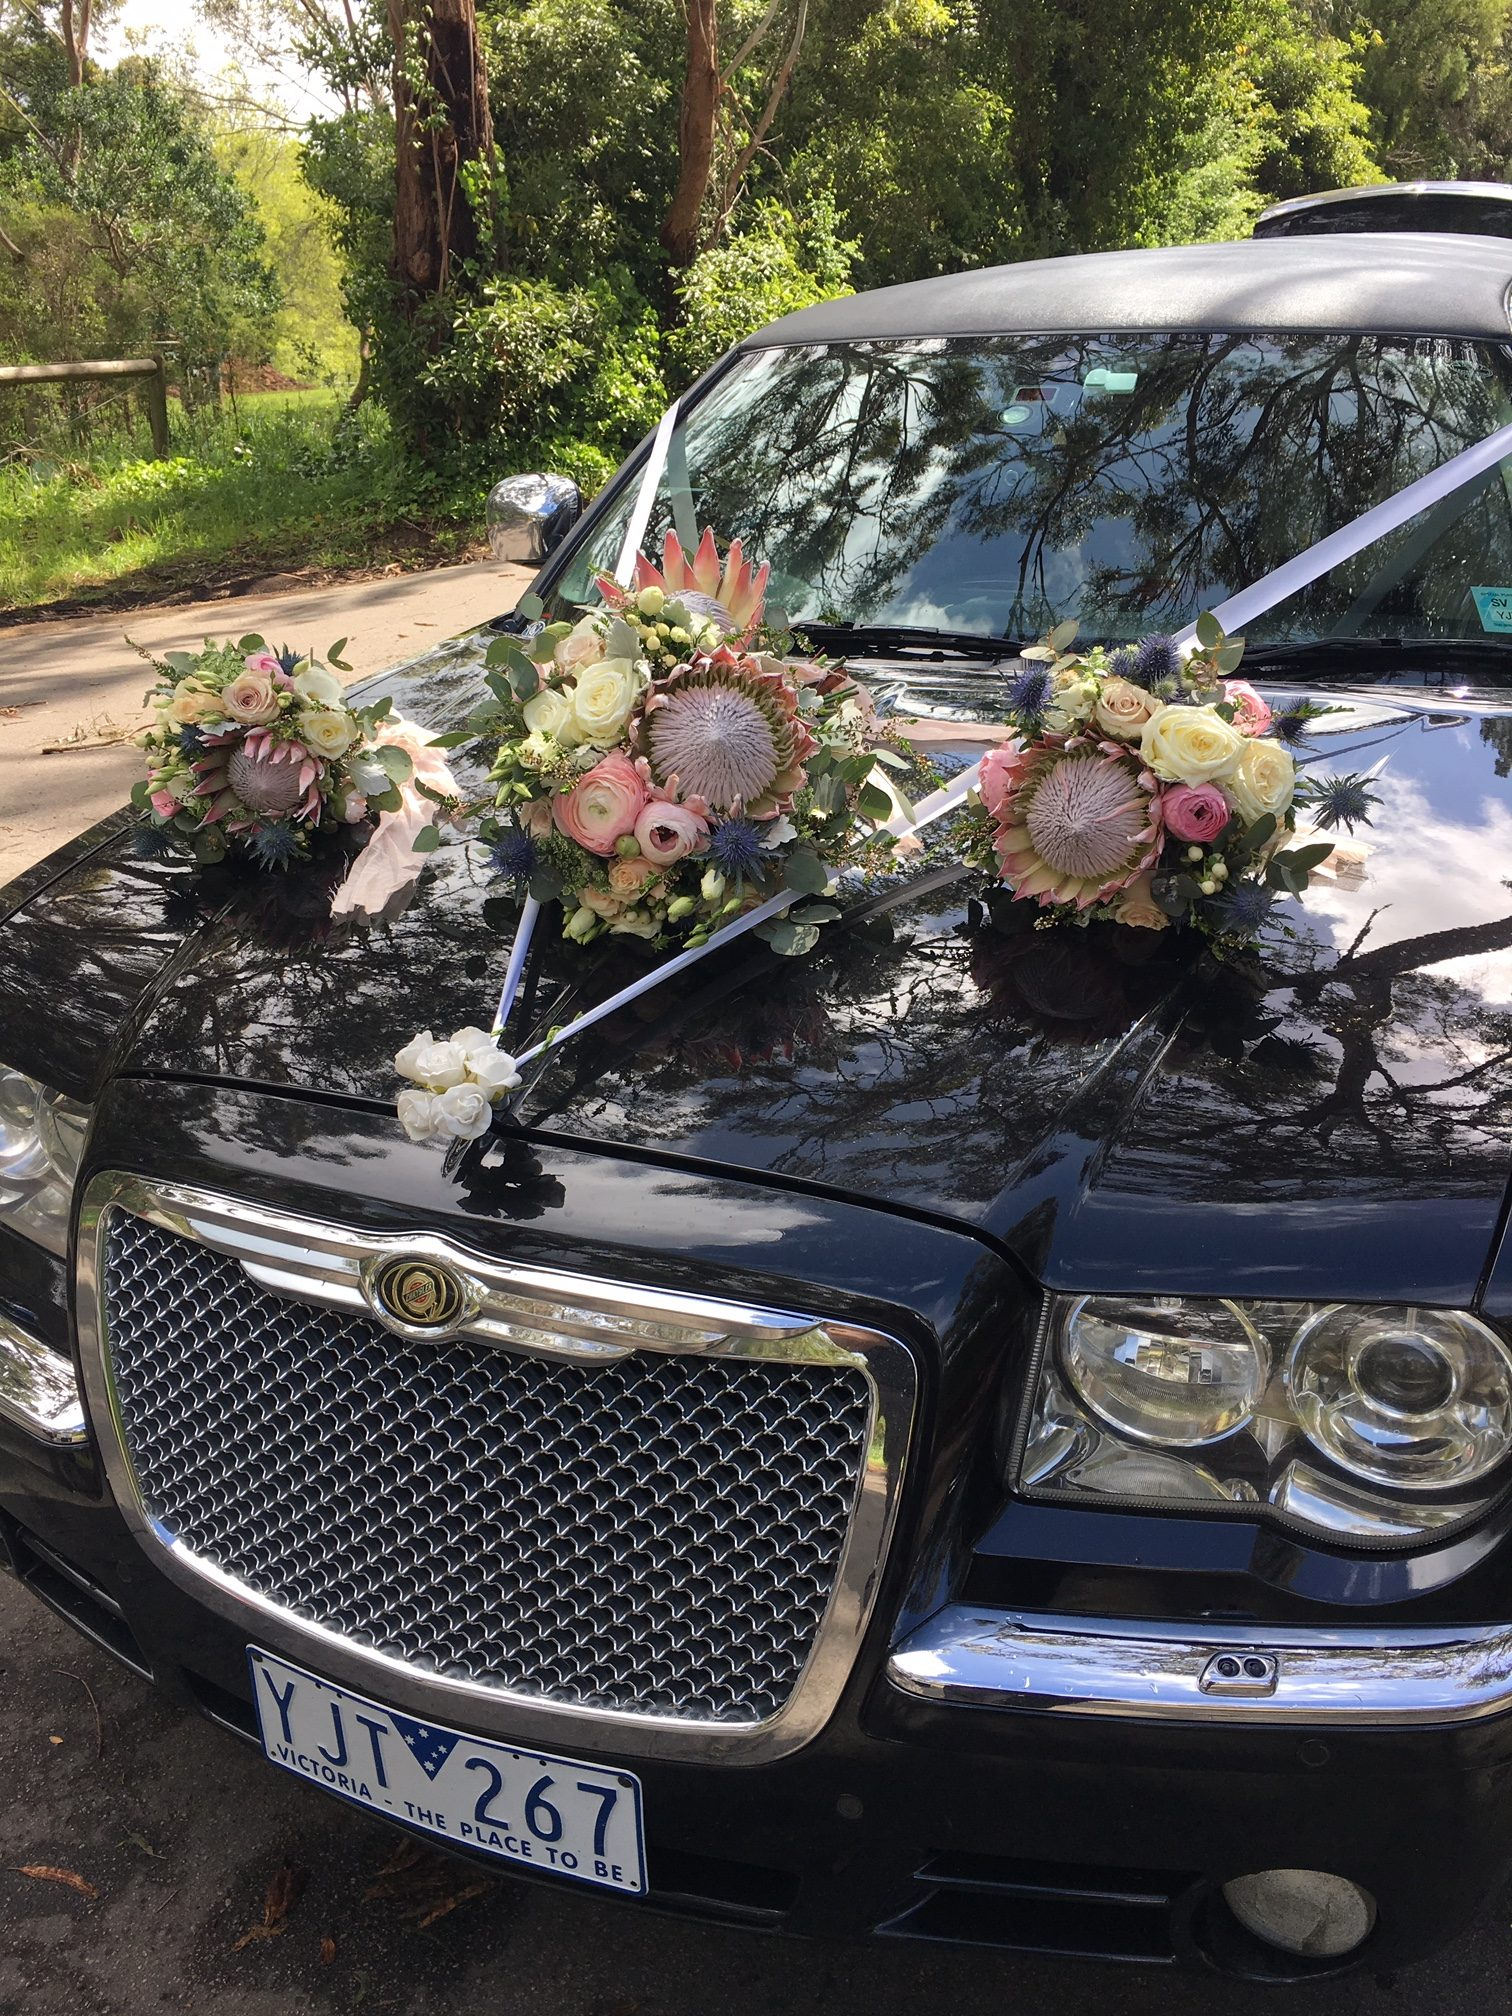 AFFINITY LIMOUSINE – We are still here!